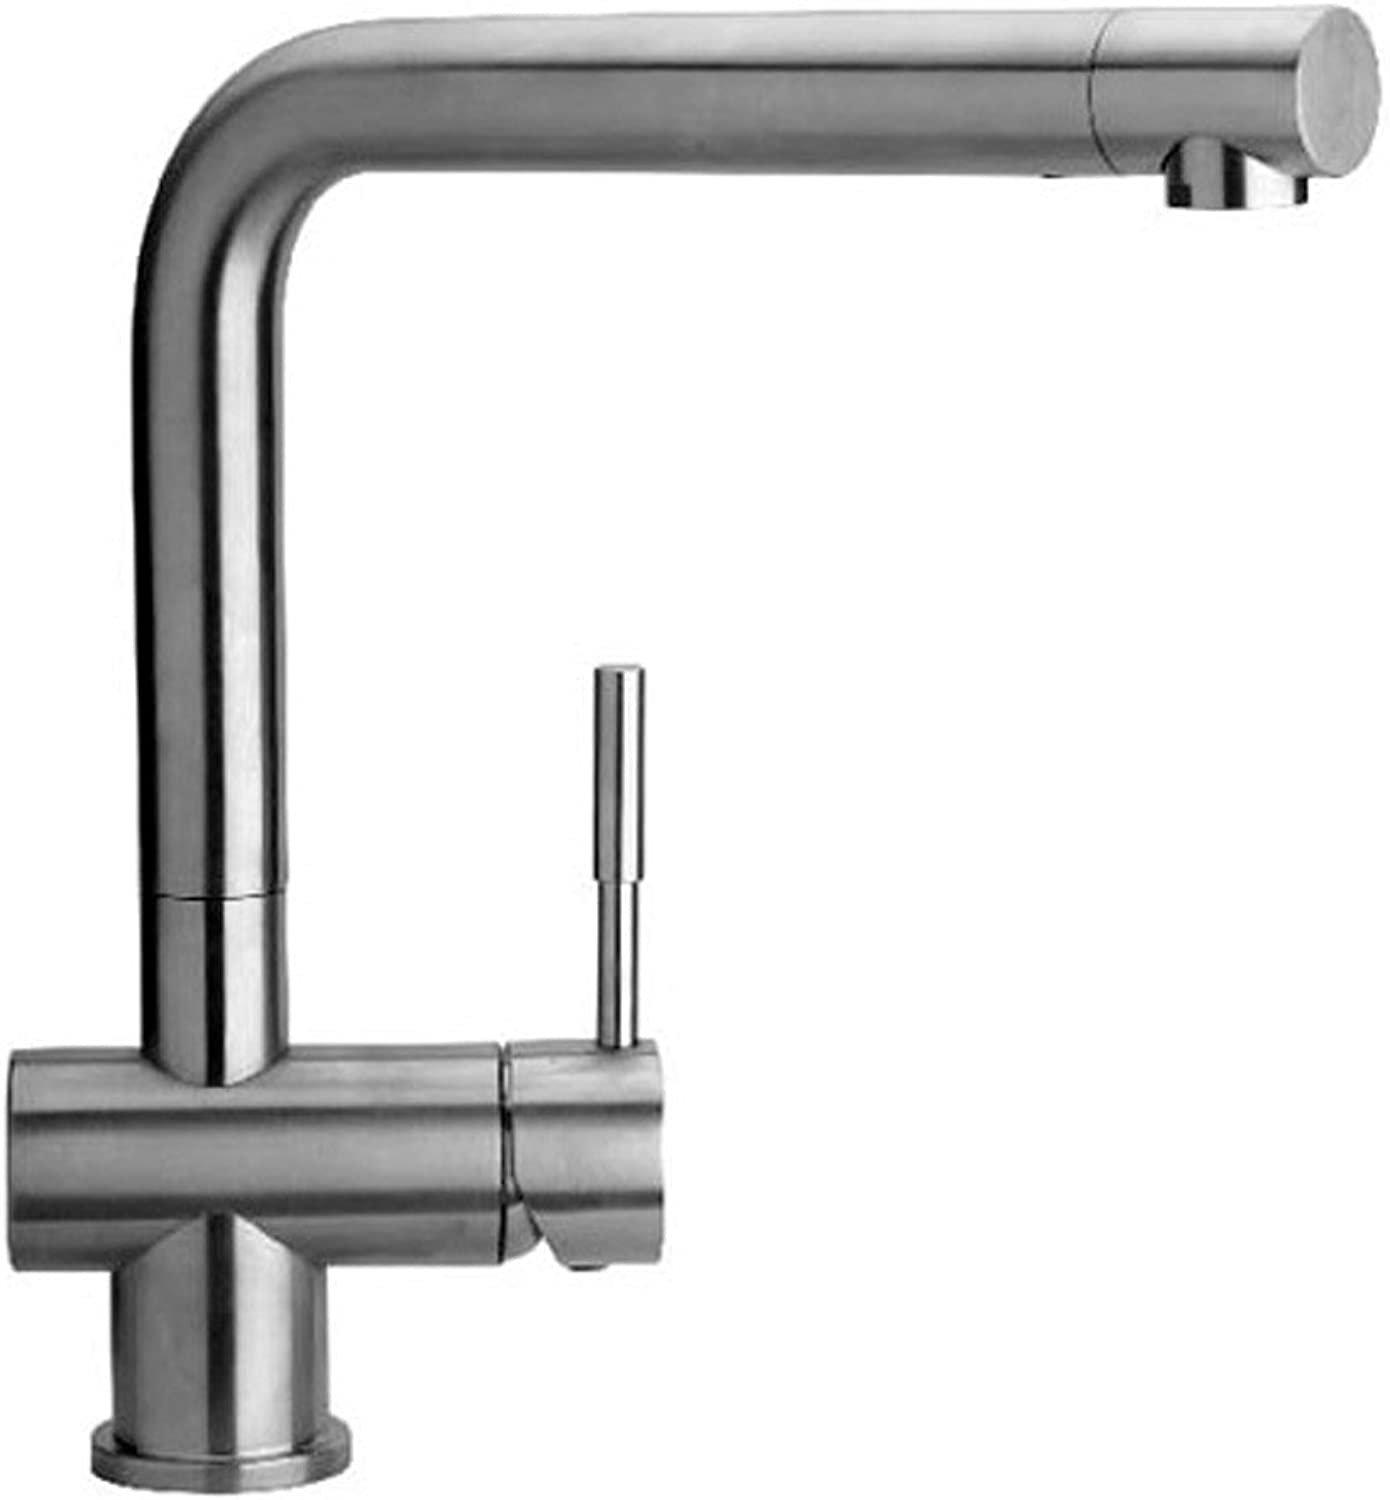 First f-ixa1570l2am Single Lever Sink Mixer for Kitchen, Stainless